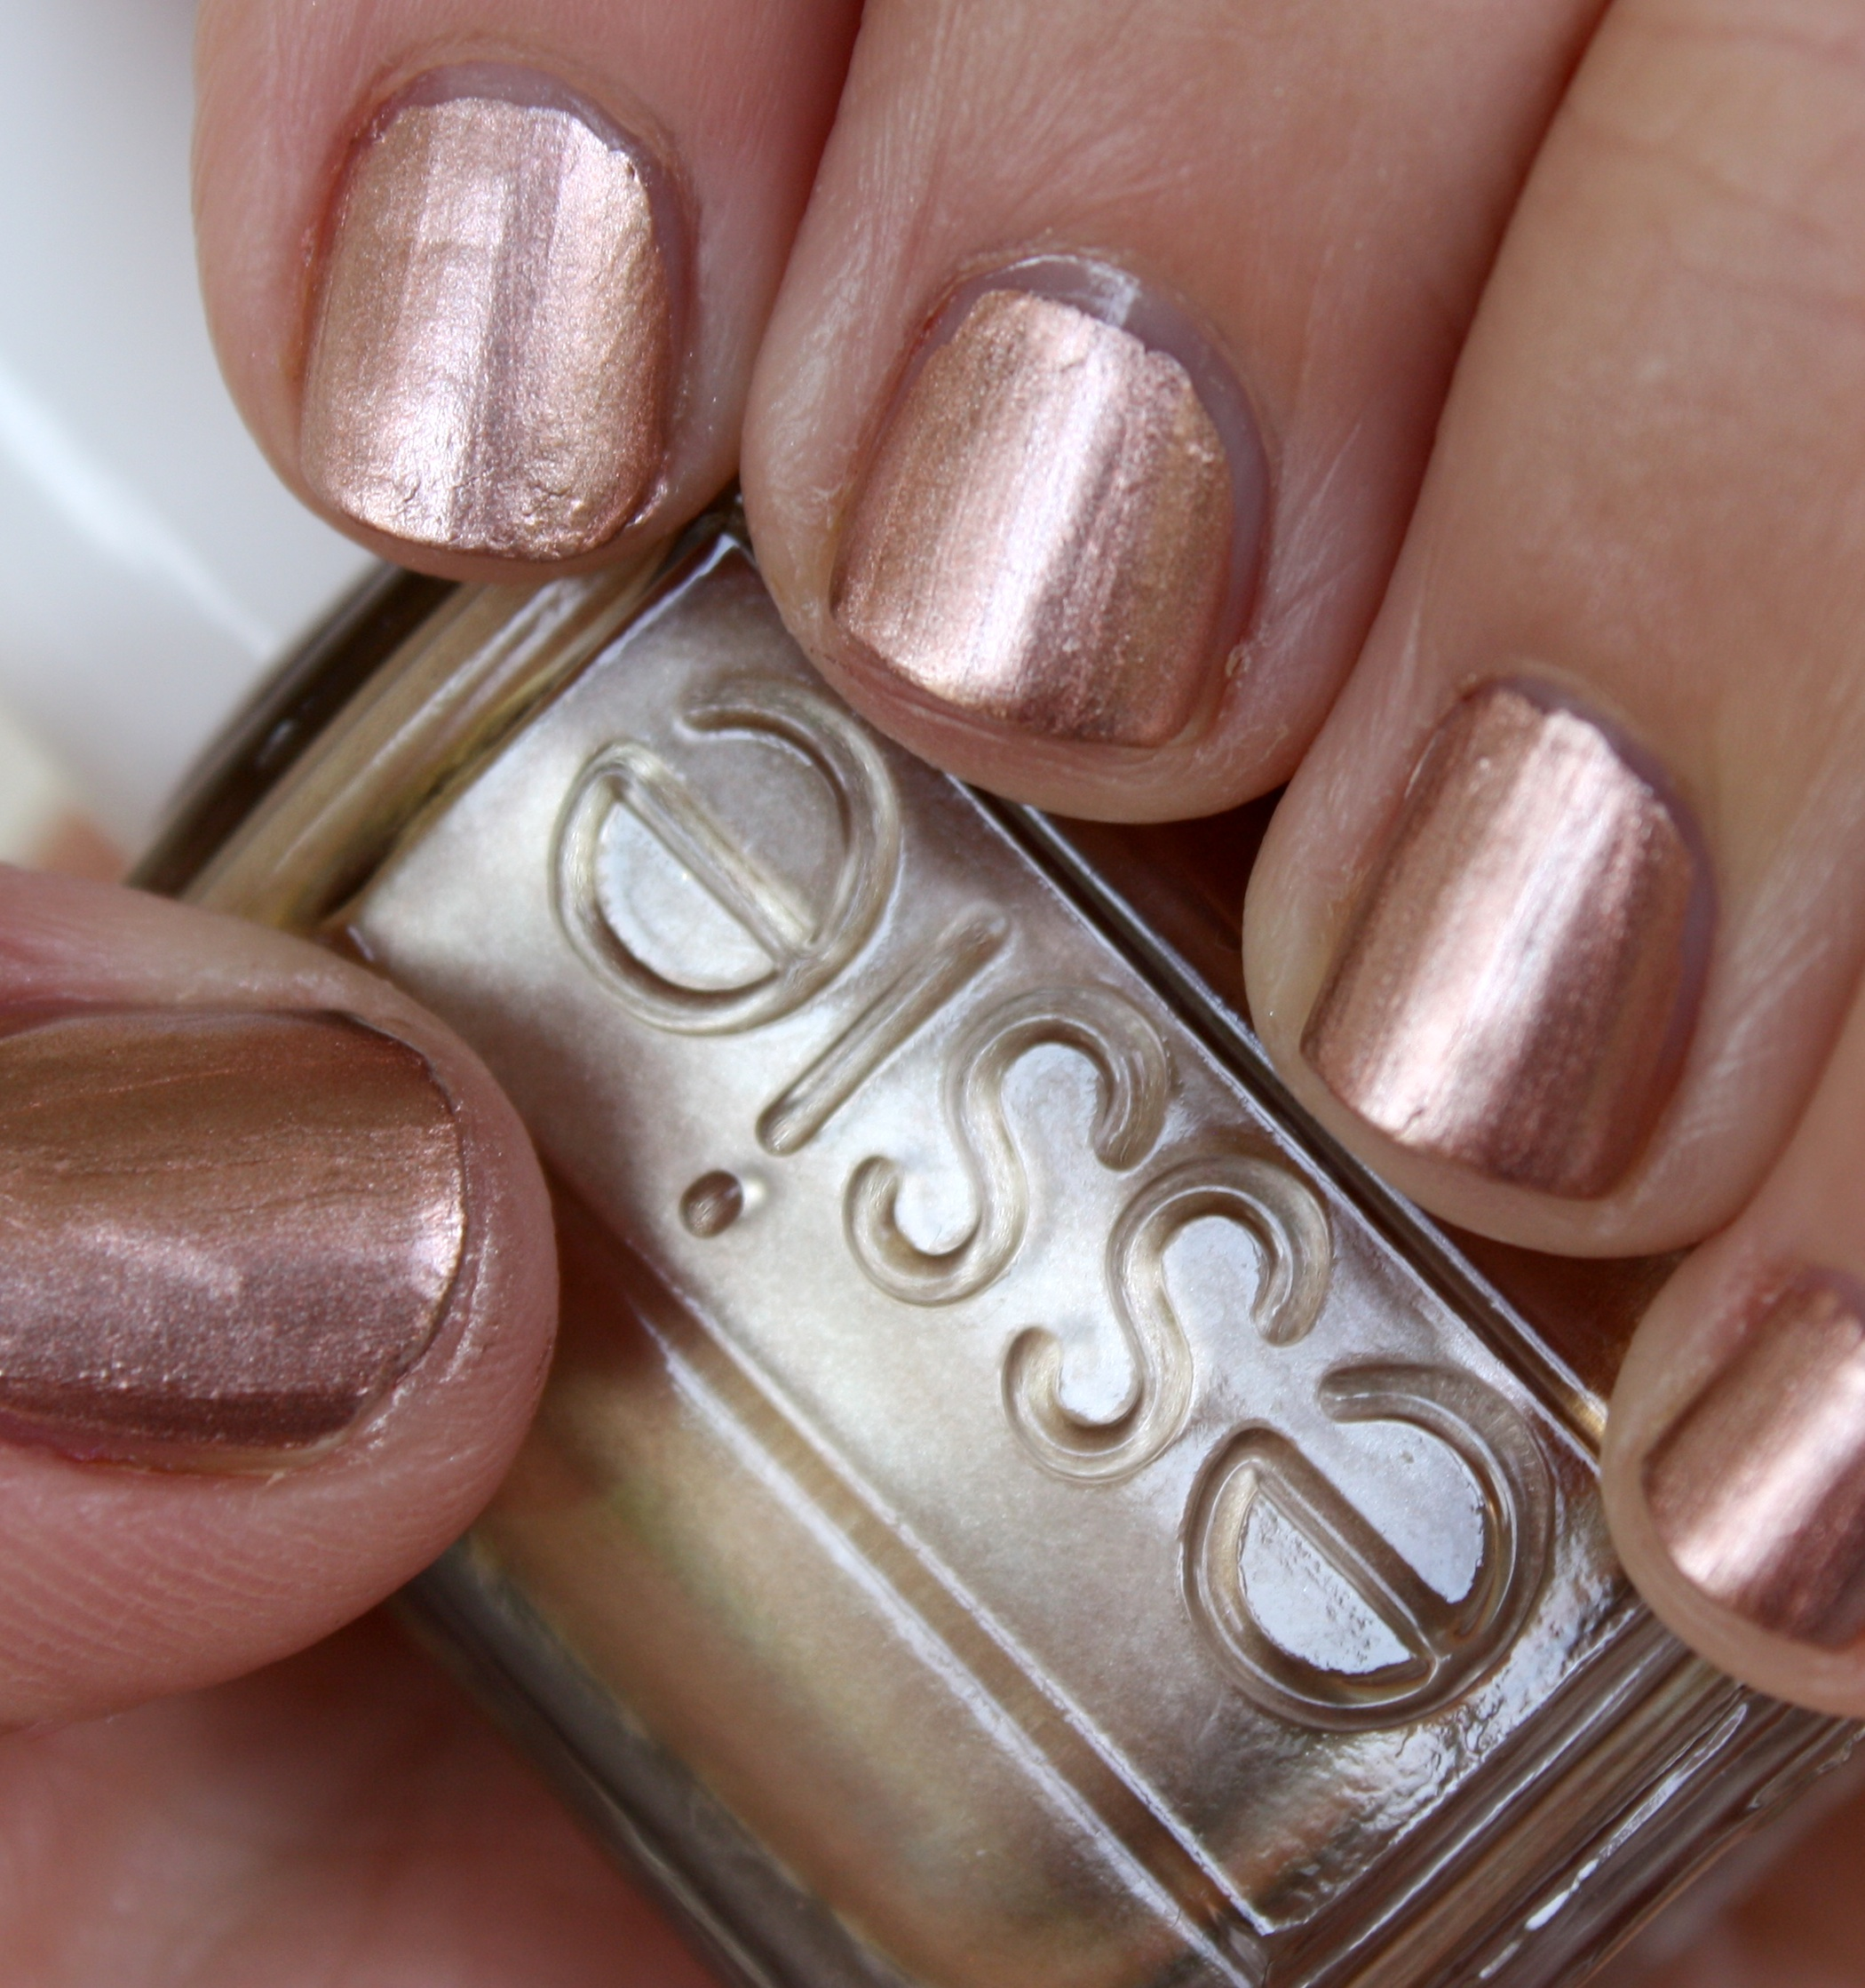 Essie Metallic Gold Nail Polish: Horrendous Color